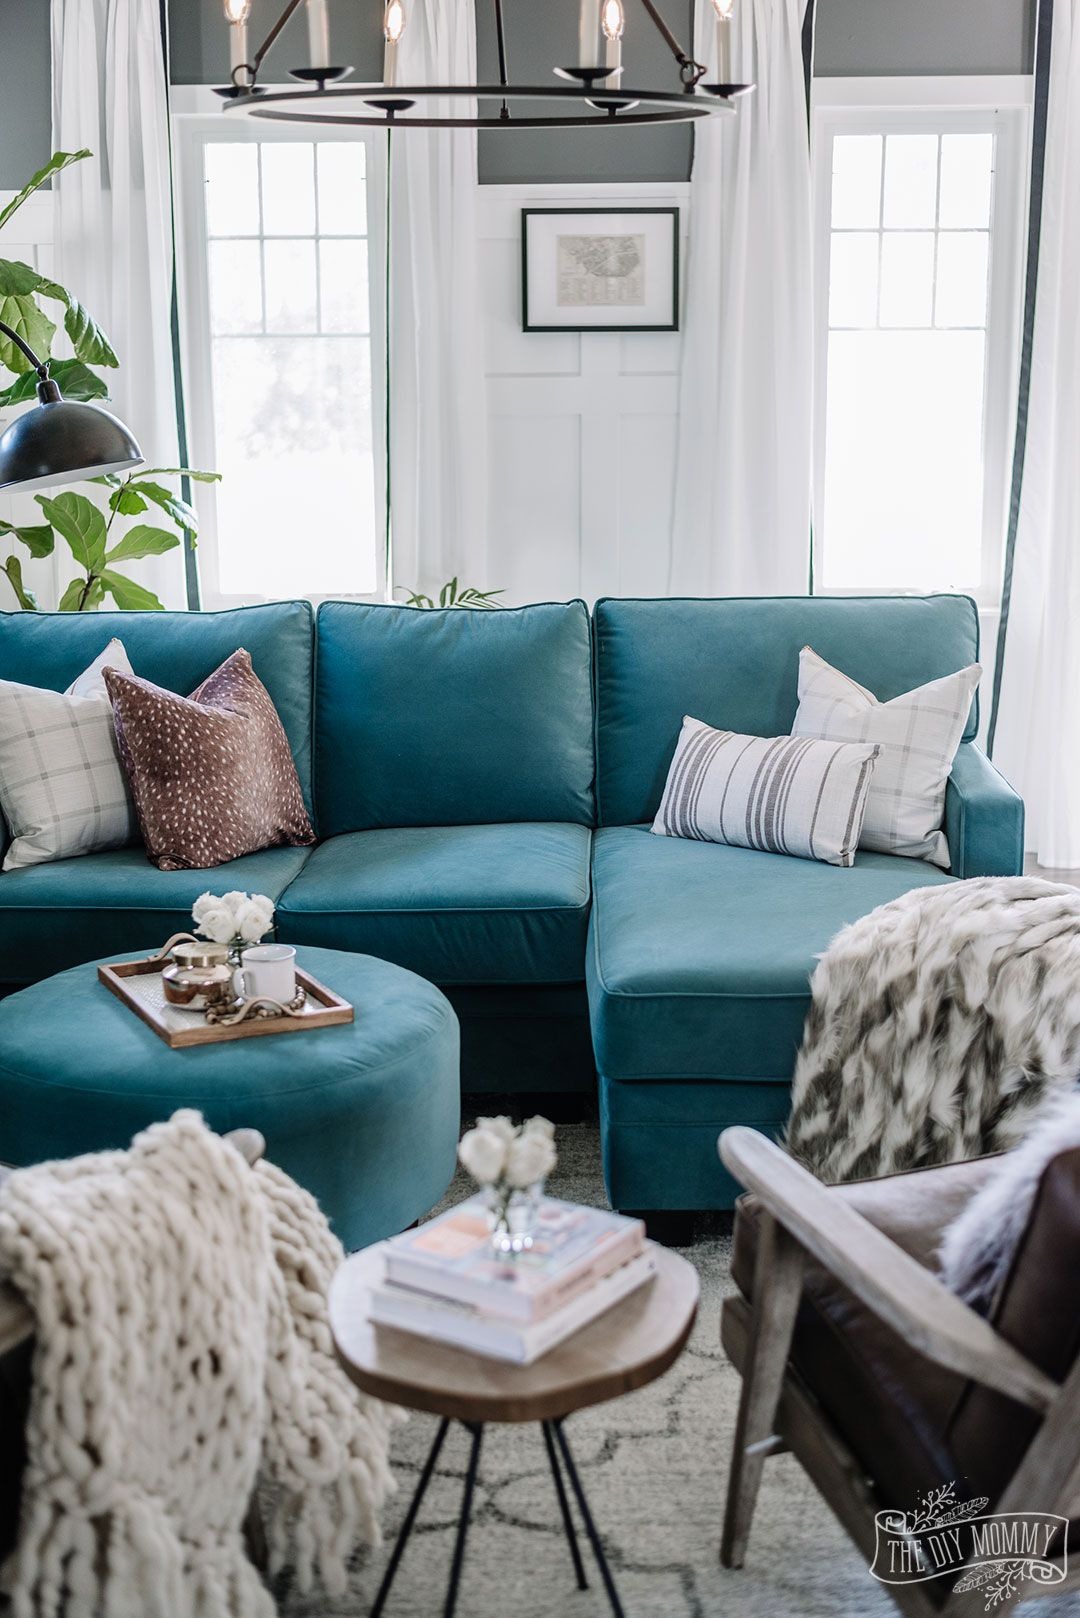 Eclectic Living Room With Teal Velvet Sofa Brown Leather Chairs And Black And In 2020 Teal Sofa Living Room White Living Room Colors Furniture Placement Living Room #teal #and #white #living #room